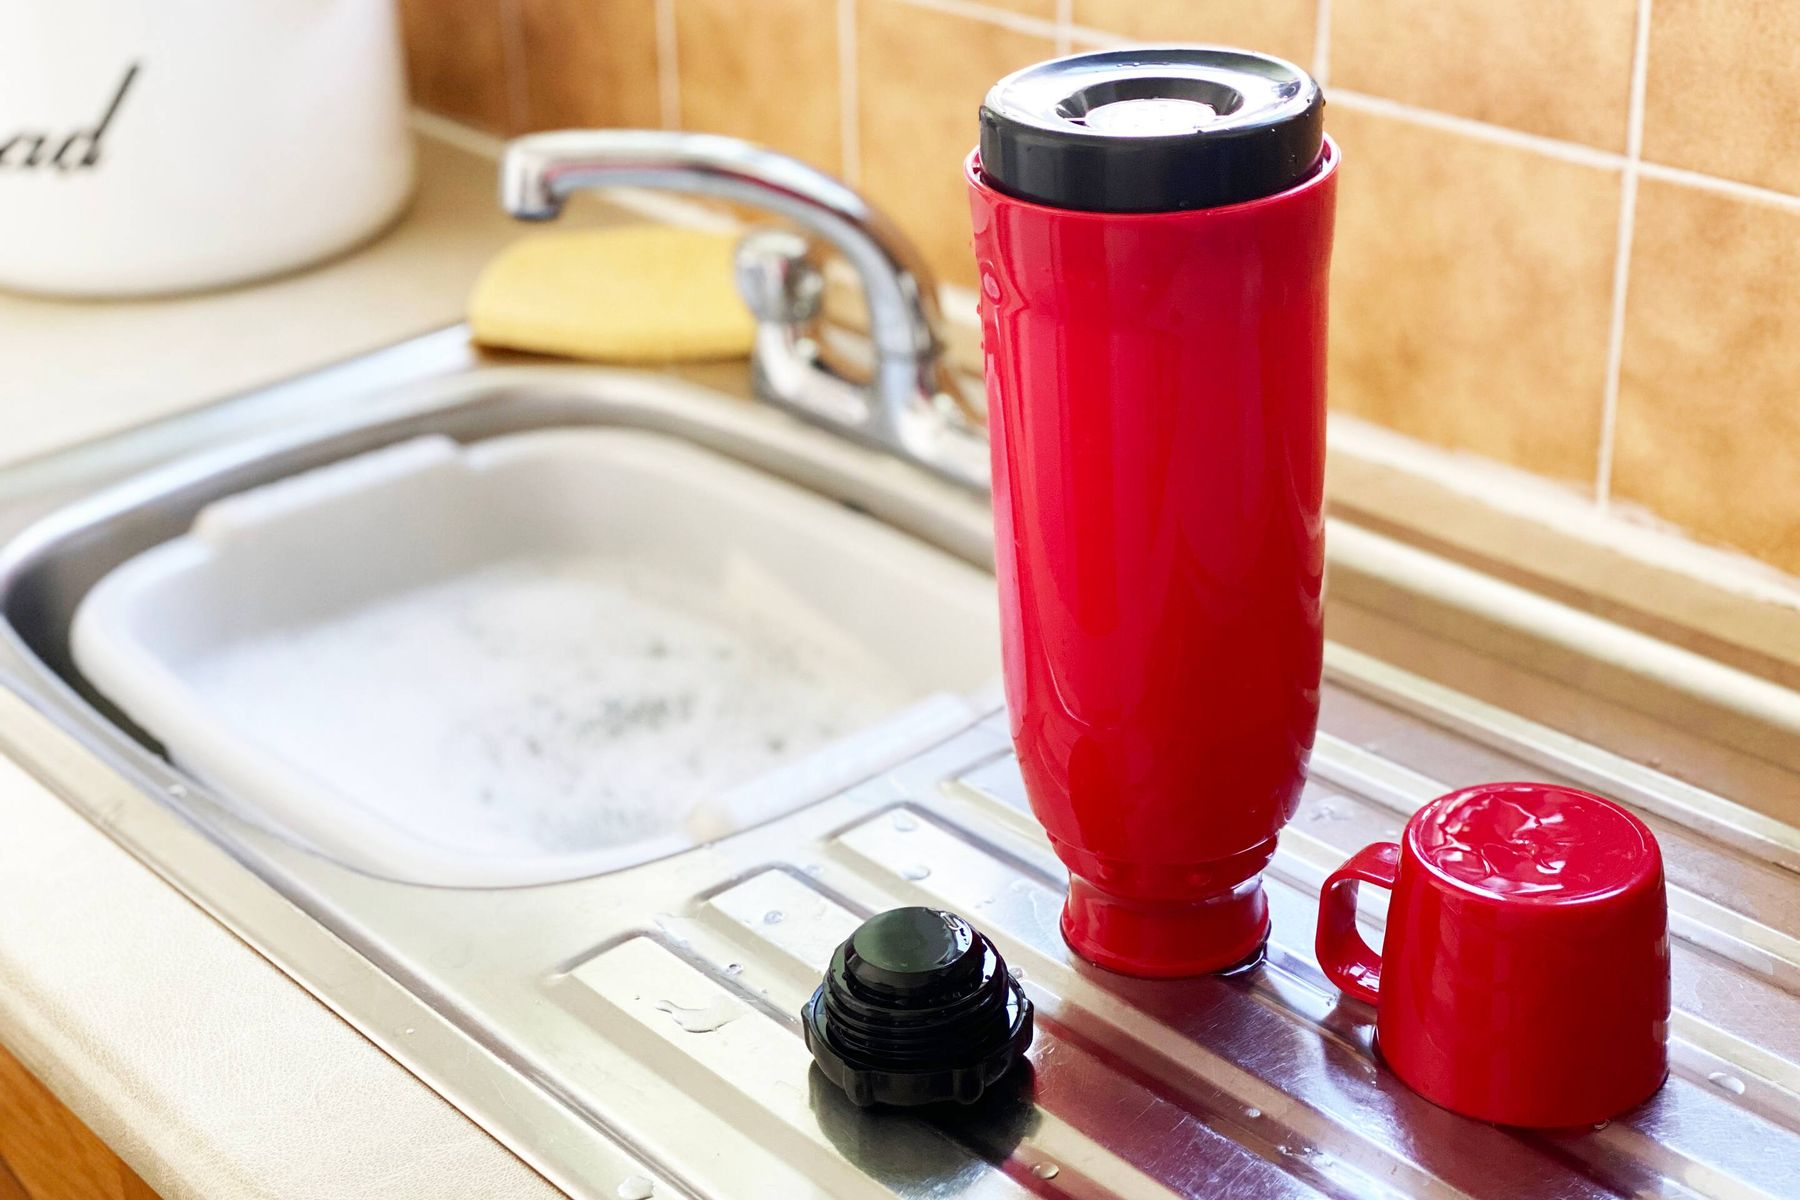 A flask, stopper and cup drying beside a sink